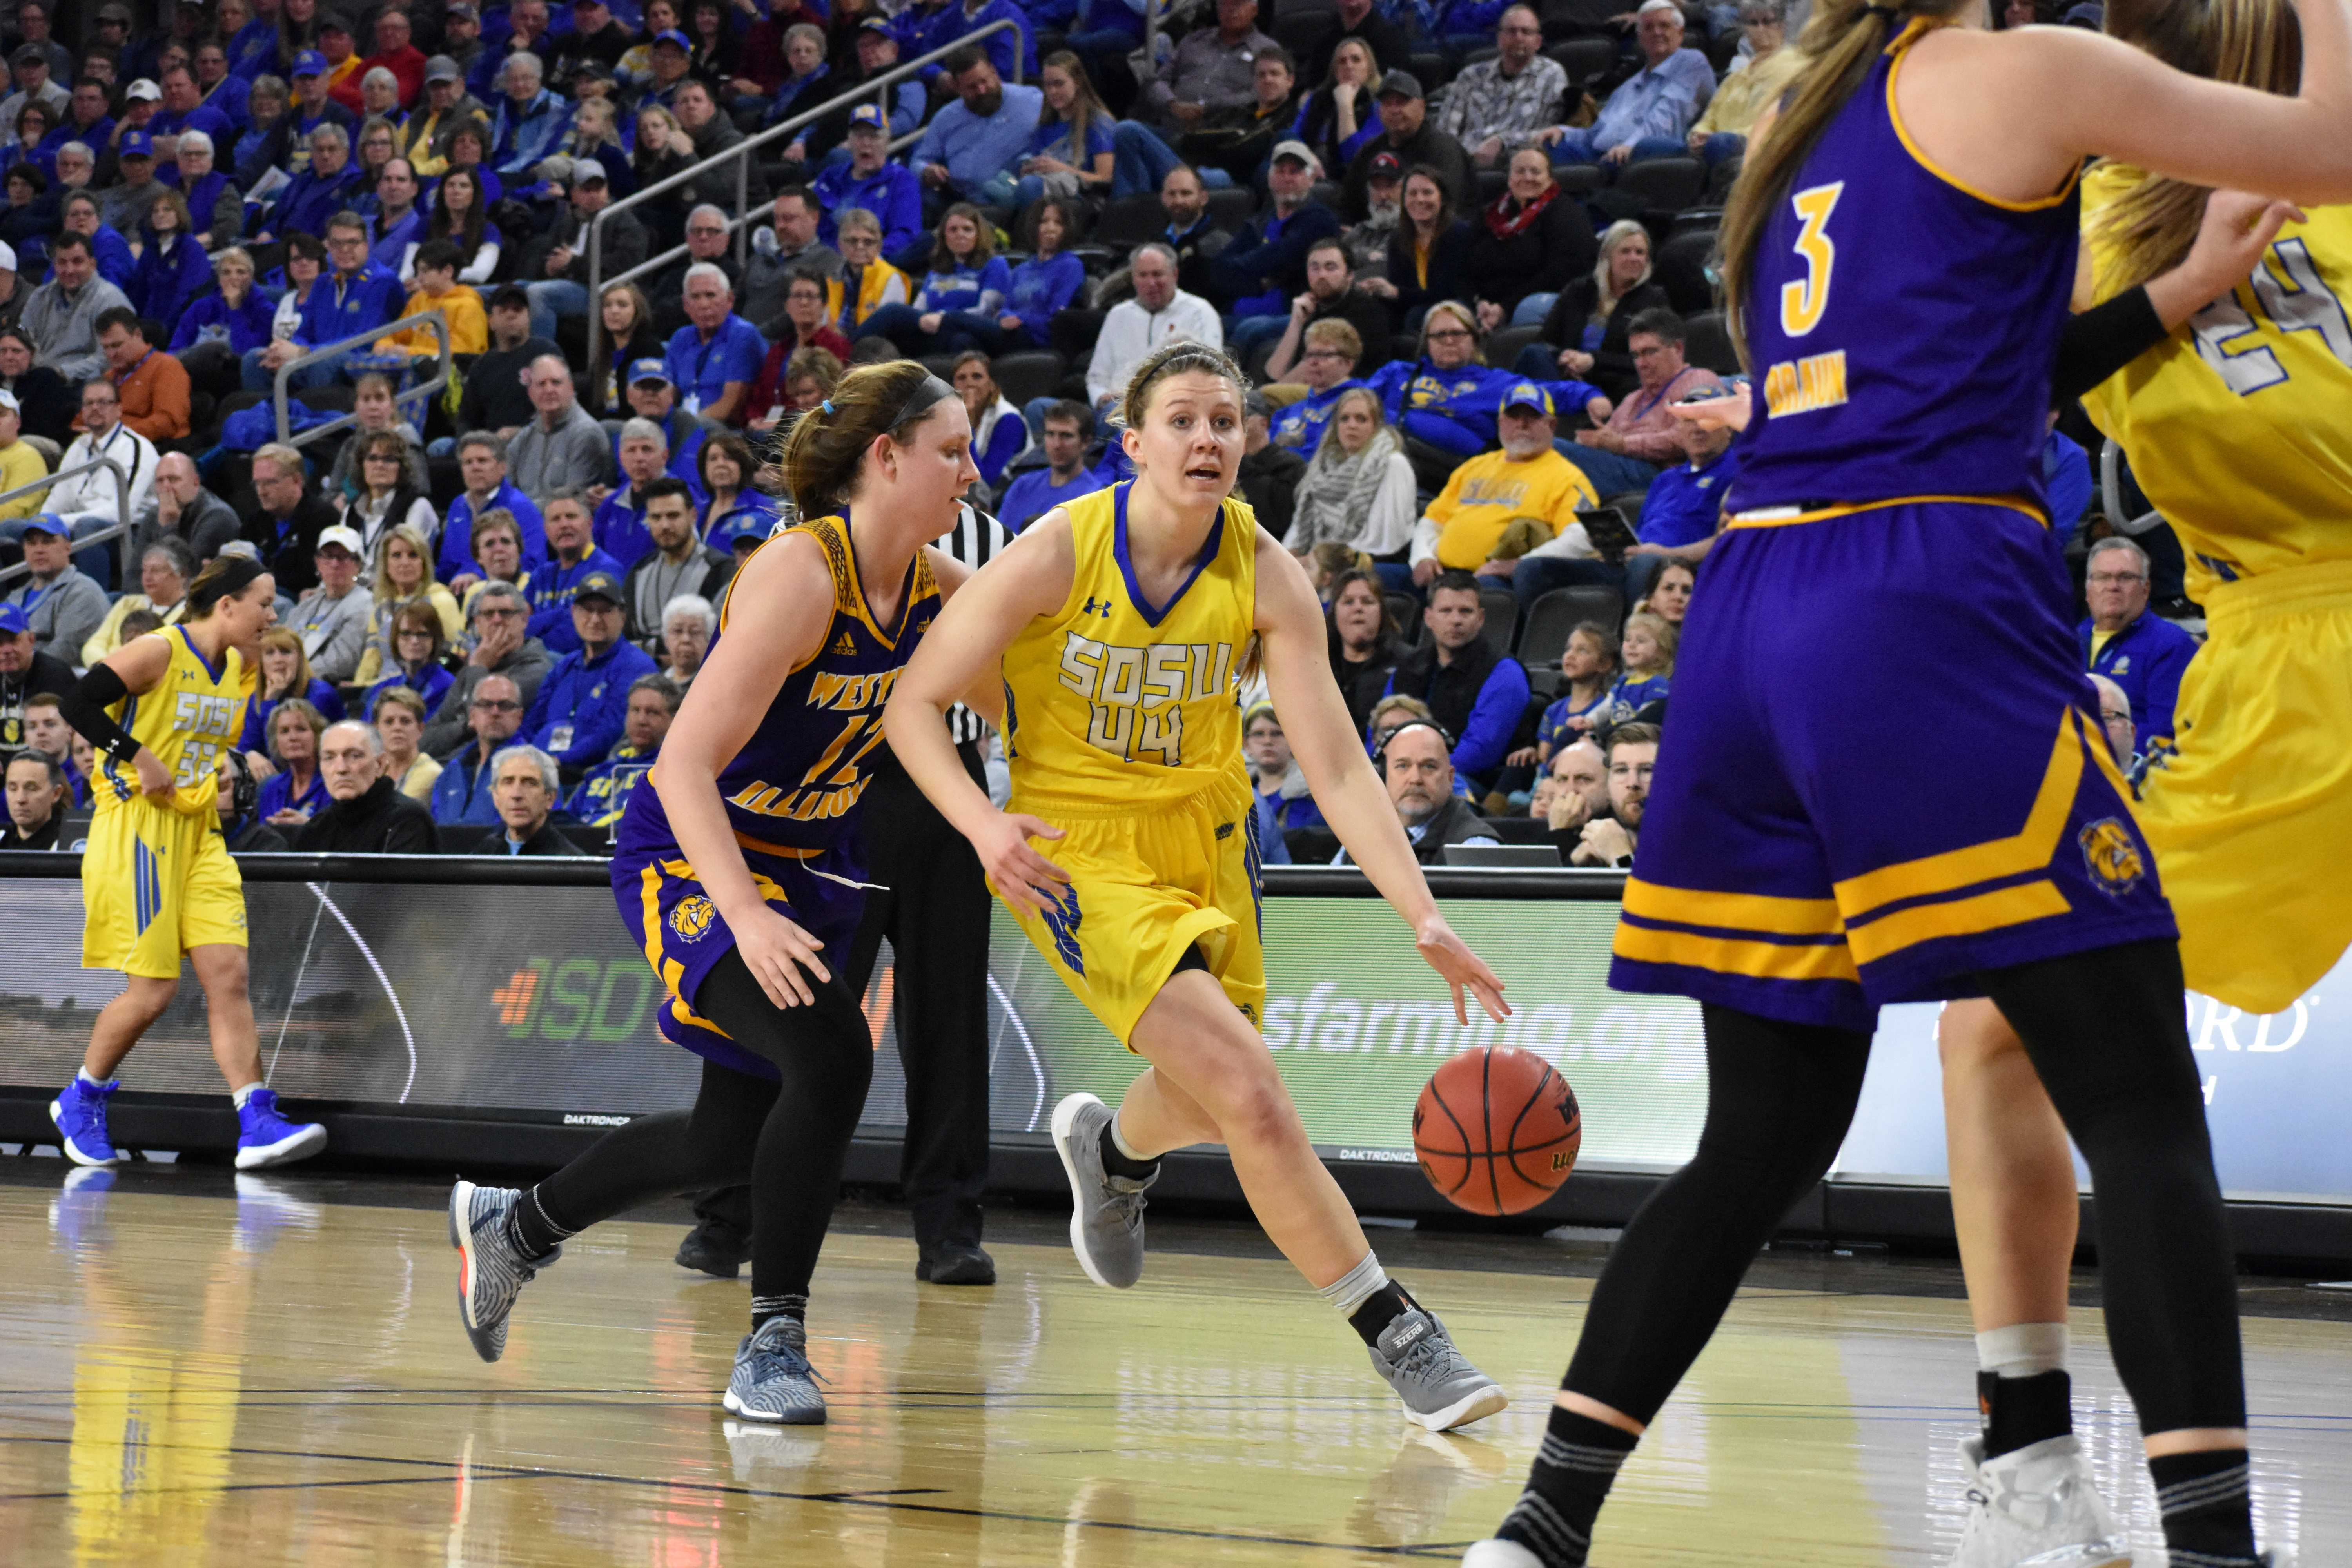 ABBY FULLENKAMP Freshman F/G Myah Selland (44) drives the ball down the court during the first half of the game against WIU March 5. The Jacks won 80-51.